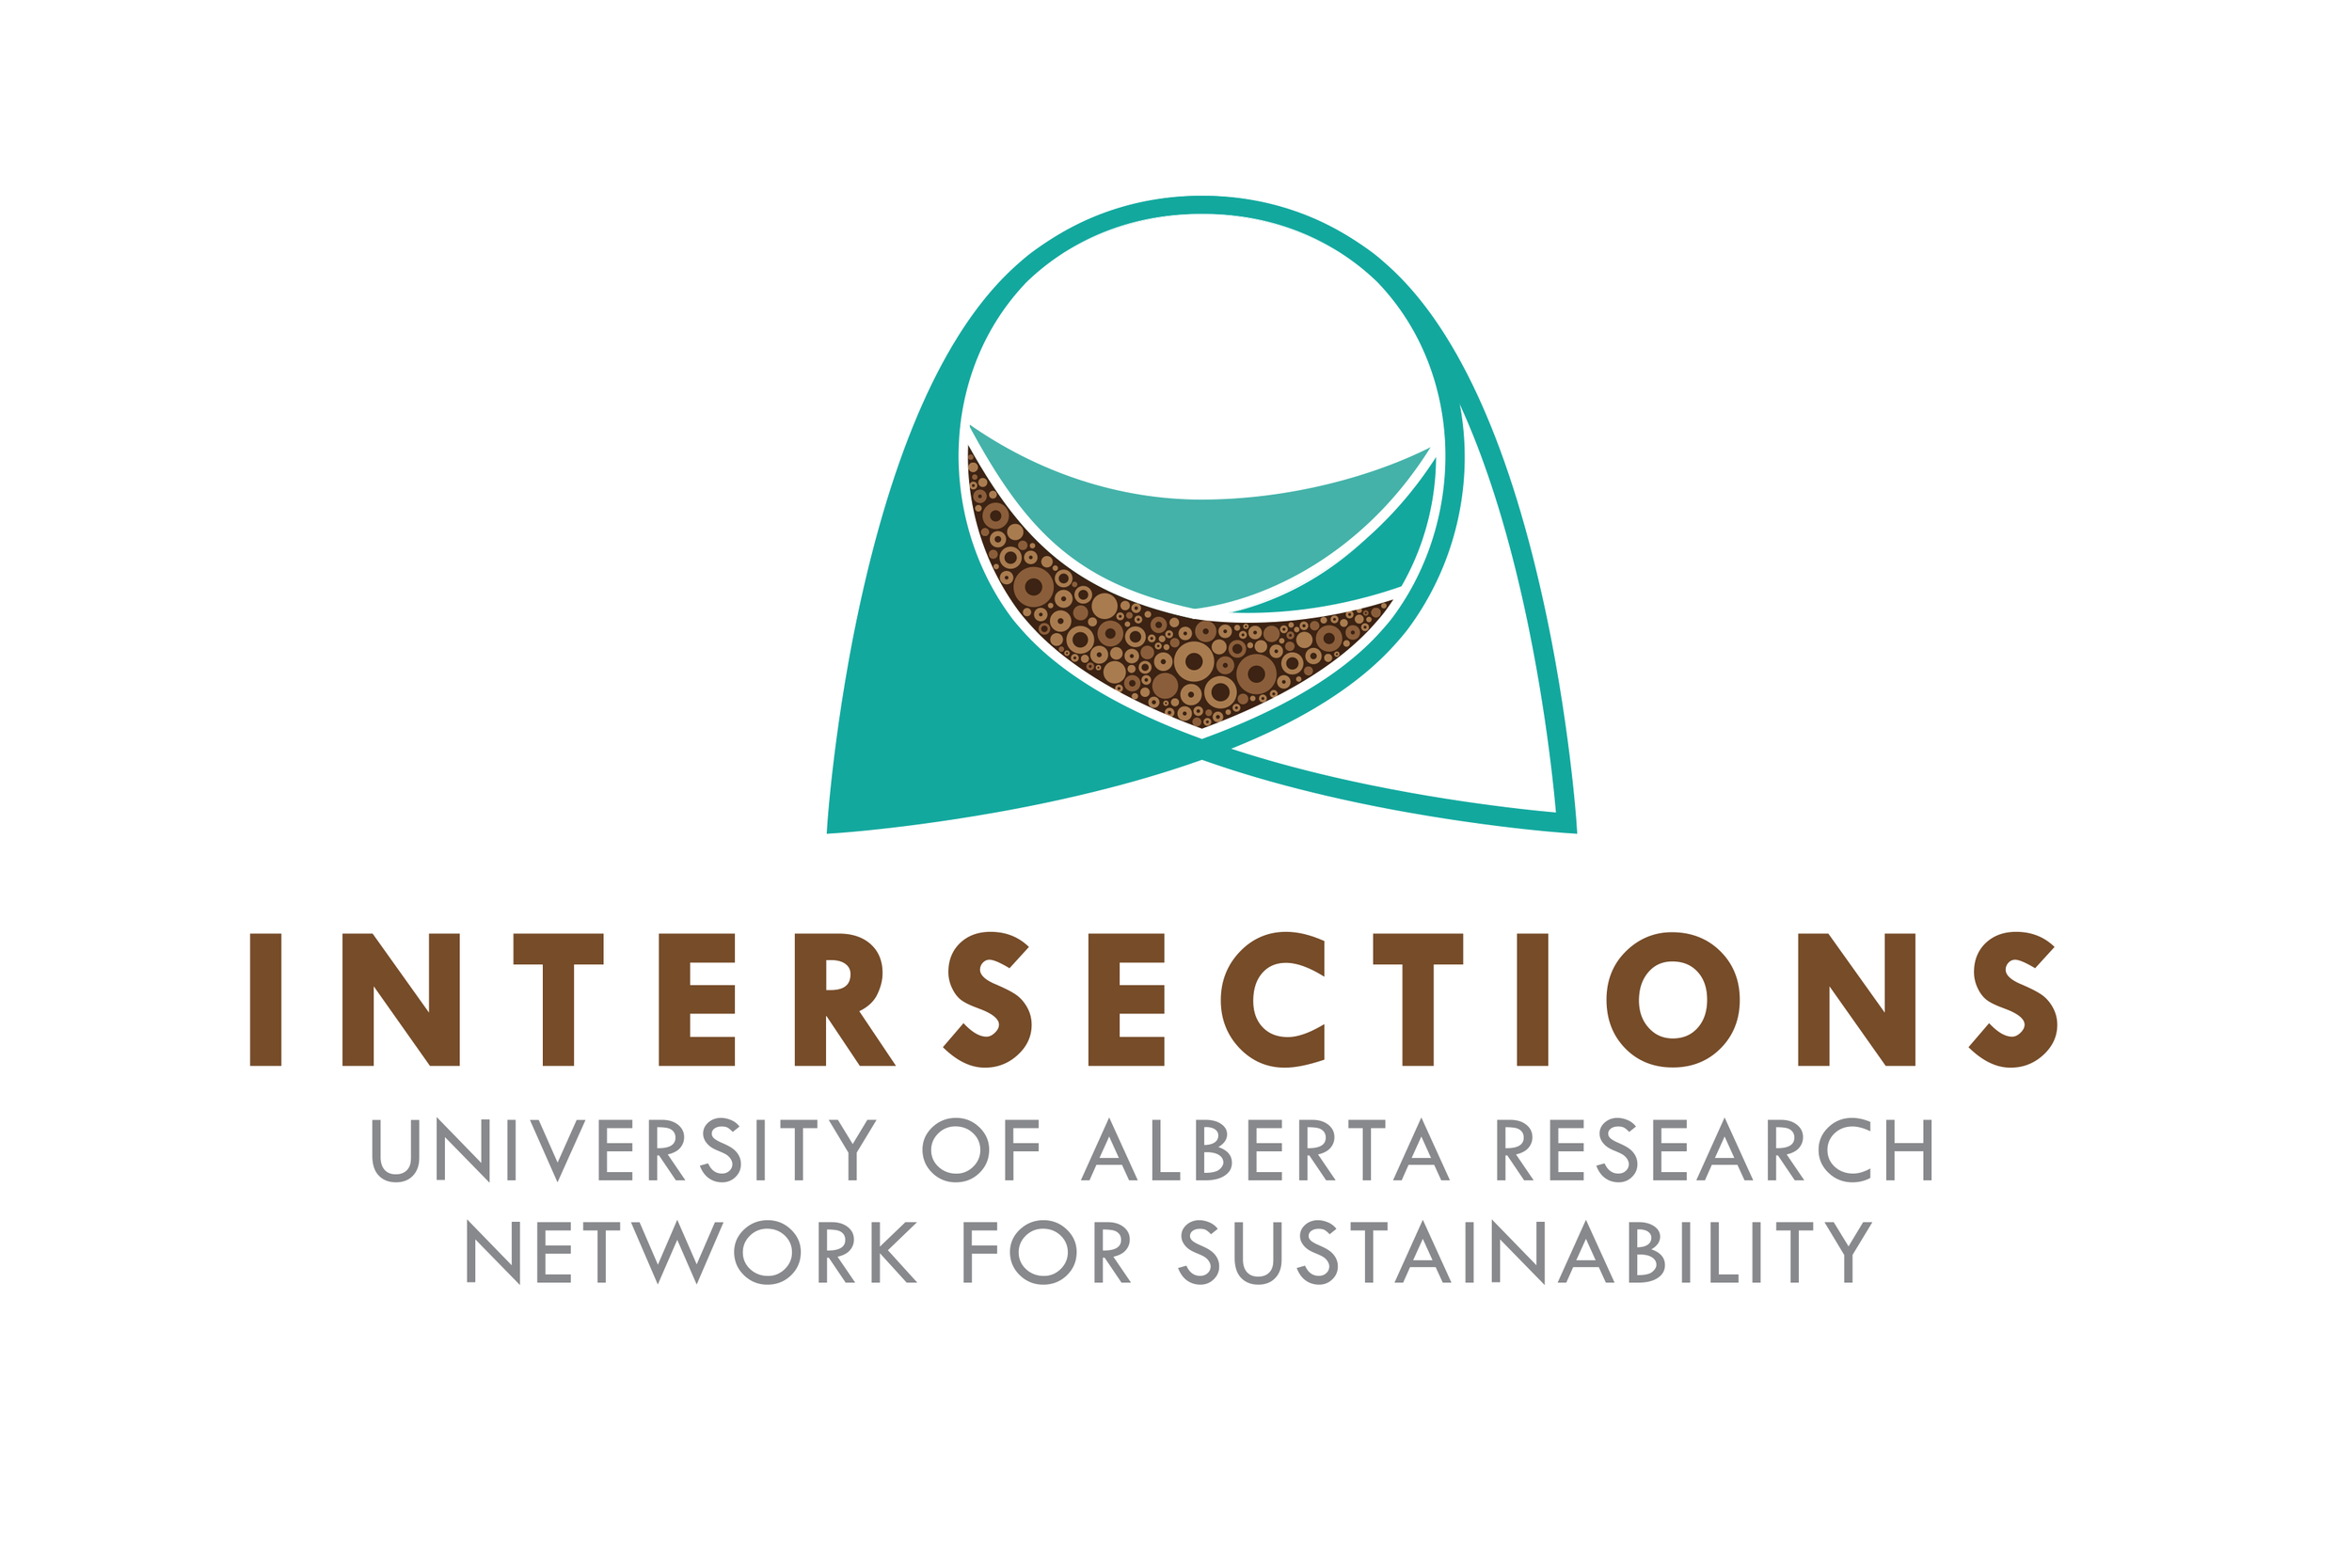 Intersections-Concepts-3.png